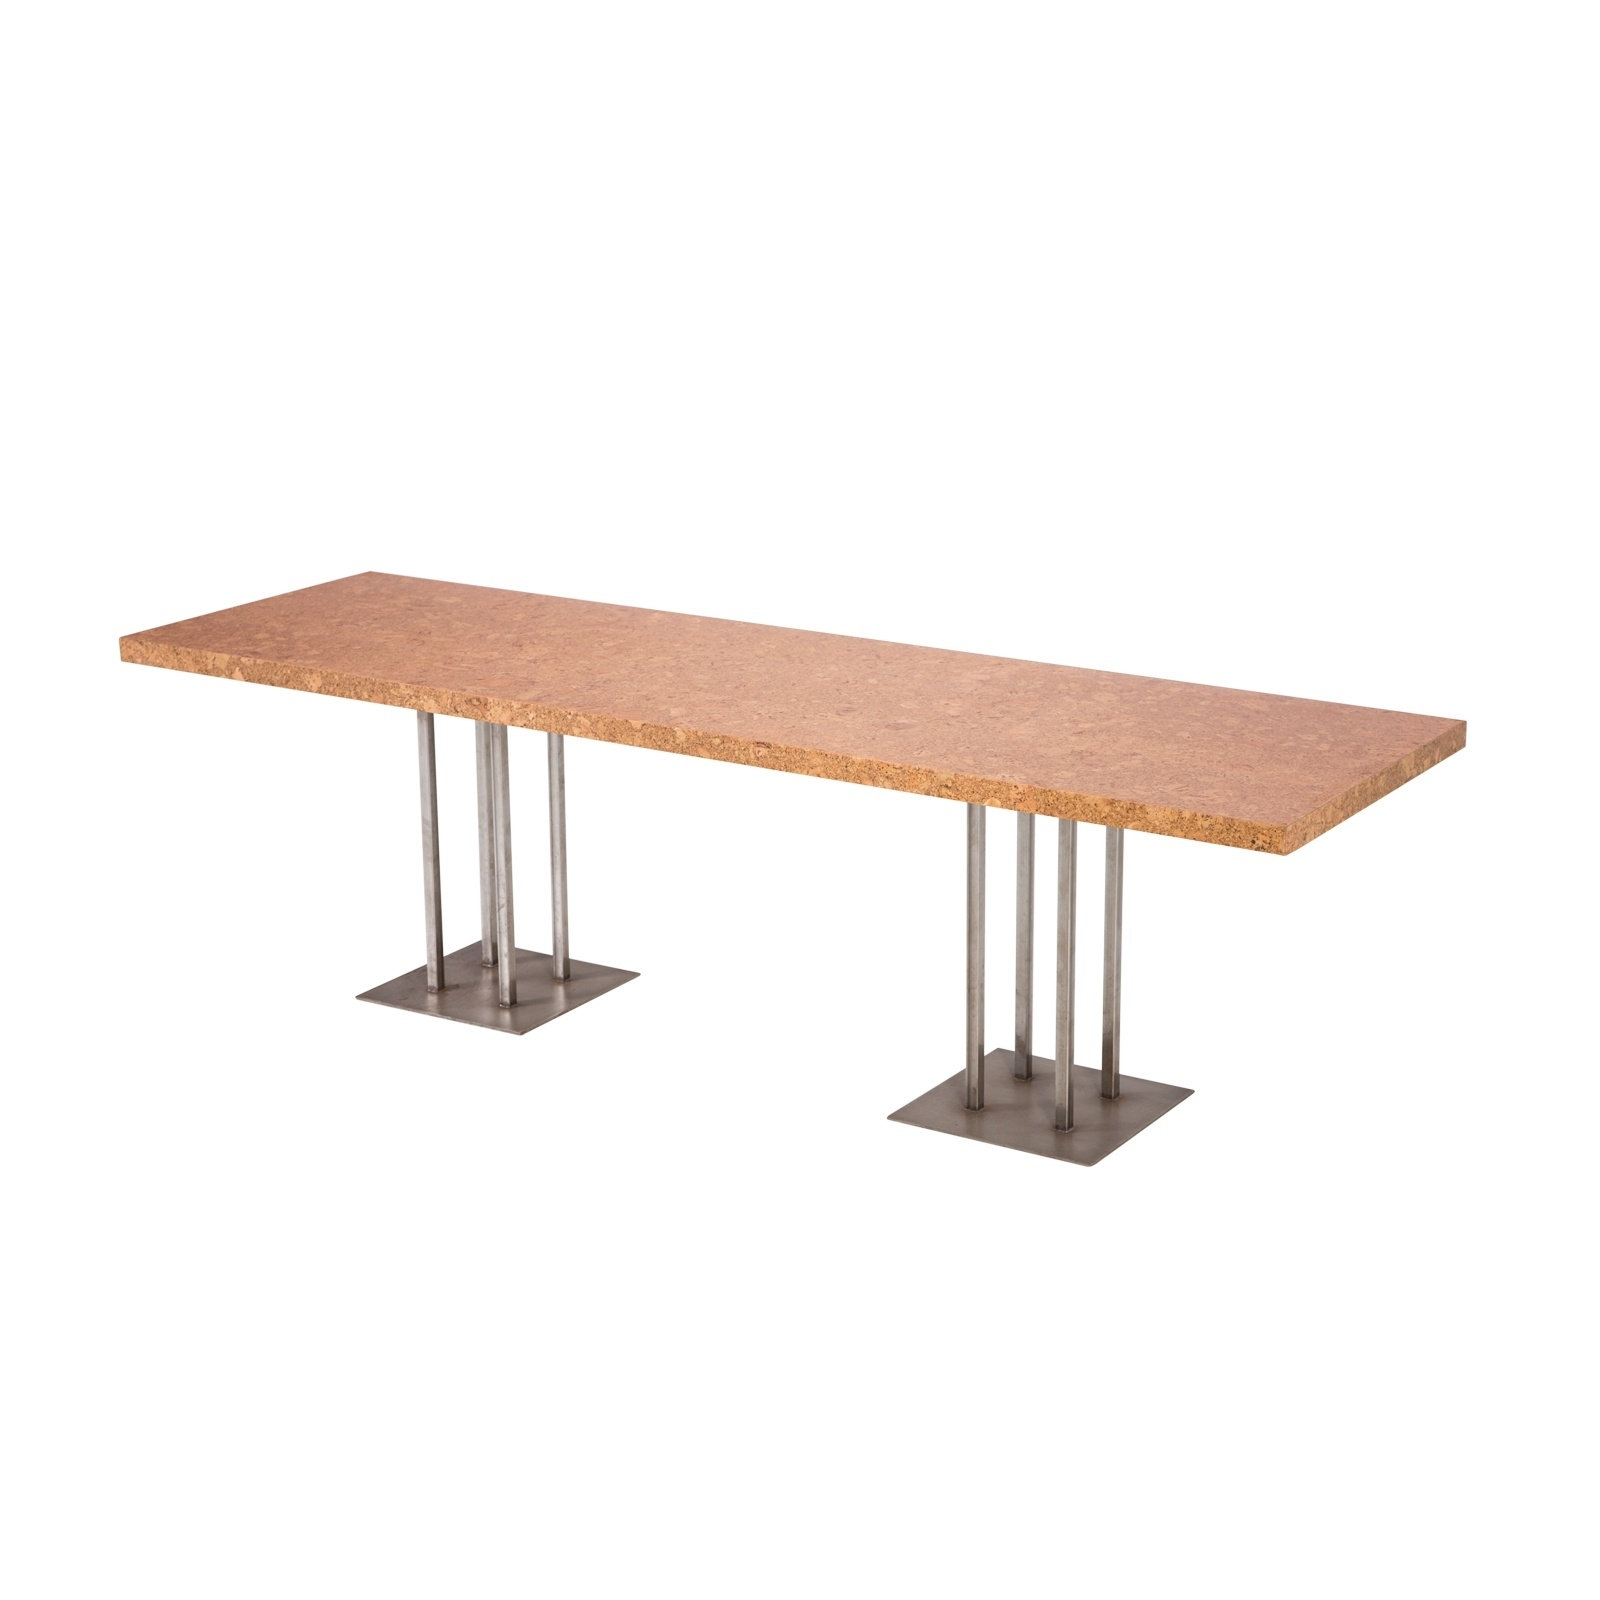 Current Cork Dining Table 96 – Formdecor For Cork Dining Tables (View 9 of 25)